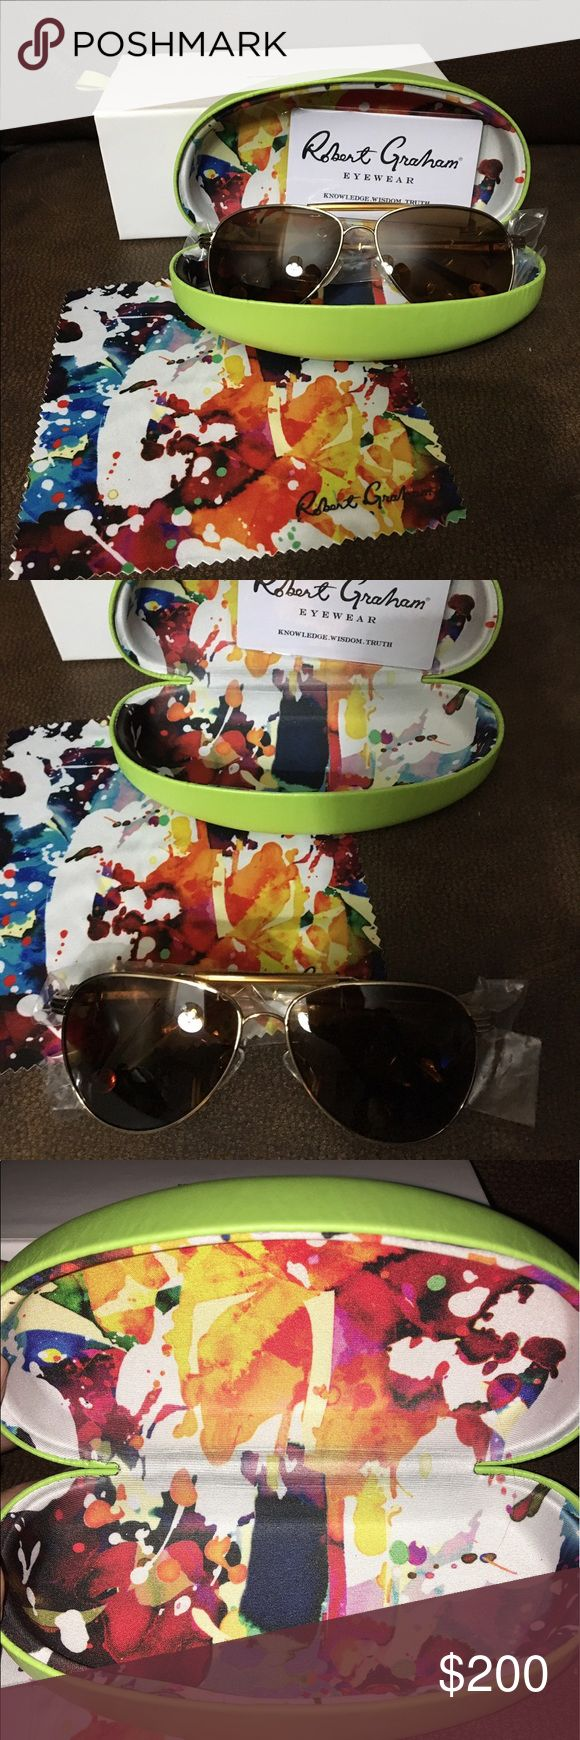 NWT Authentic Robert Graham aviator sun glasses NWT Authentic Men's Robert Graham Walker Aviator sun glasses. Comes with original box, sun glass case, cleaning cloth, and authenticity card. 😎💕 Perfect for Grads and Dad's gifts! Robert Graham Accessories Glasses